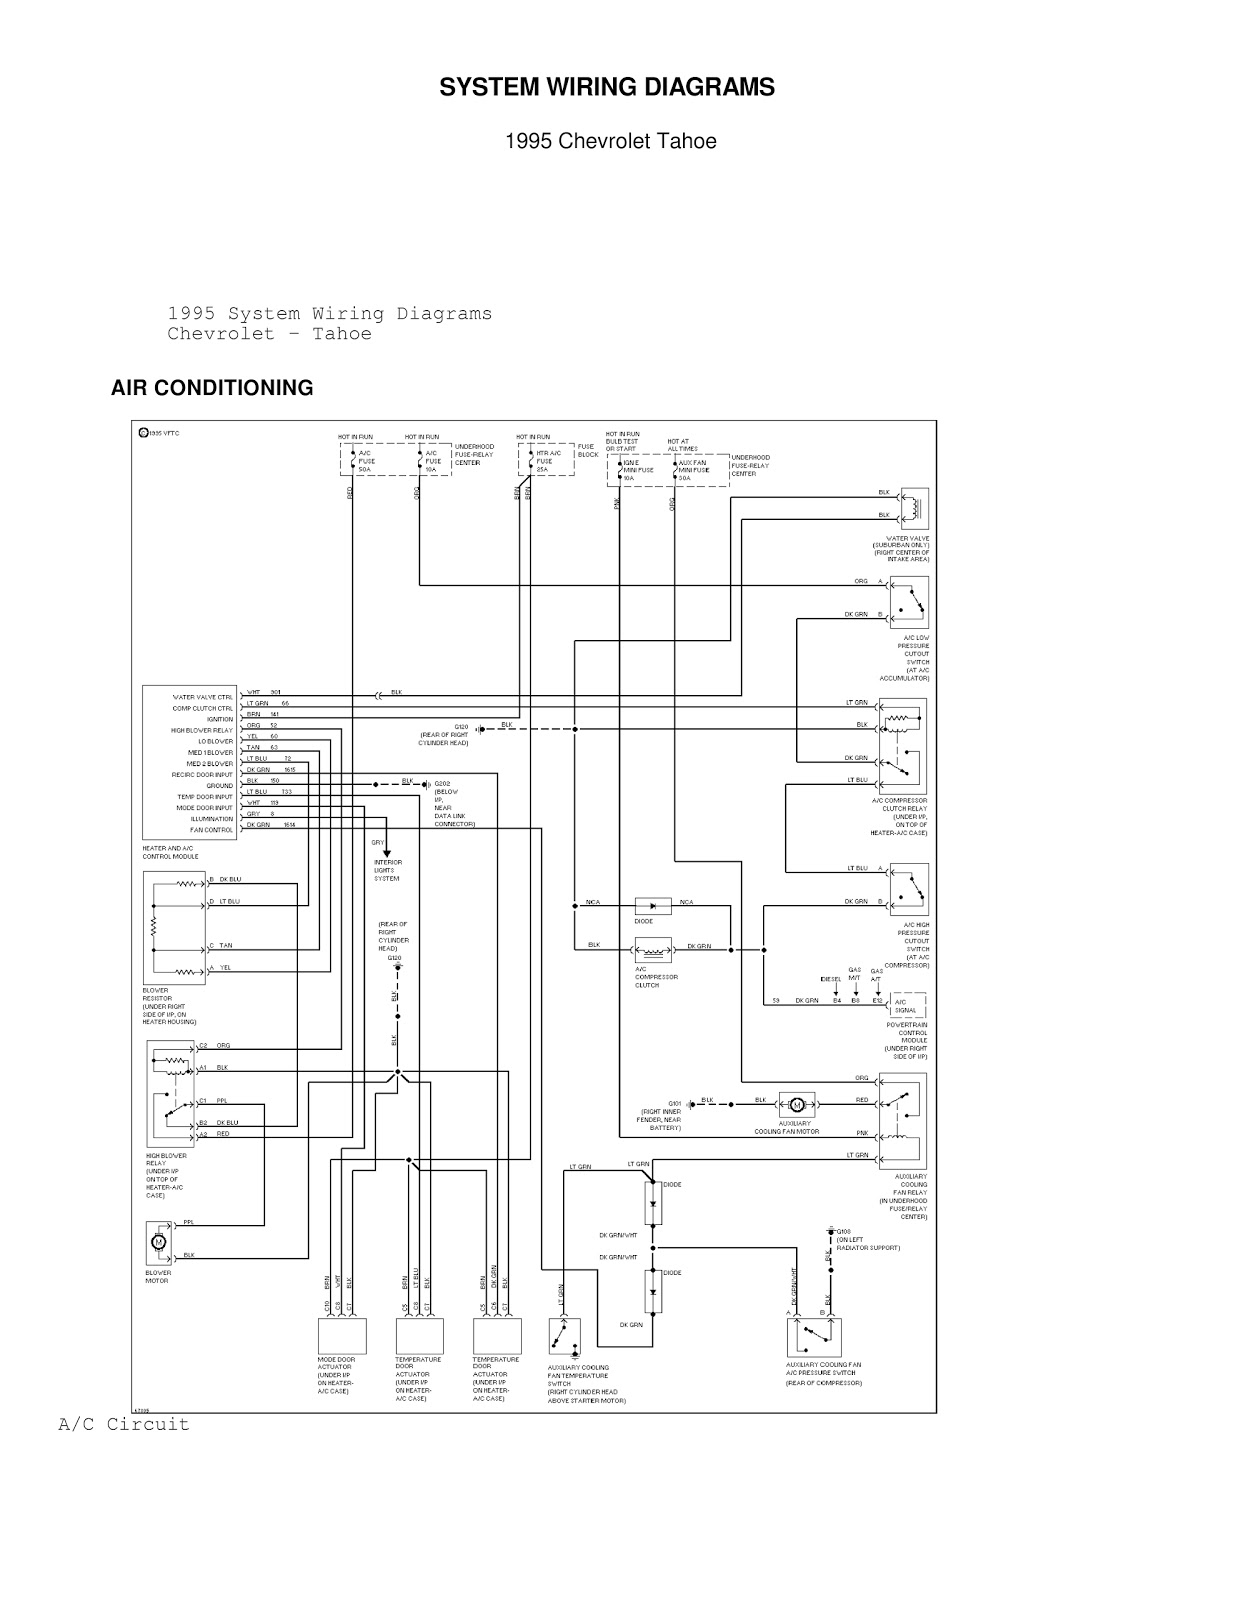 hight resolution of 1995 chevrolet tahoe system wiring diagrams air 1995 chevy suburban wiring diagram on a fuel pump wiring schematics for 95 tahoe